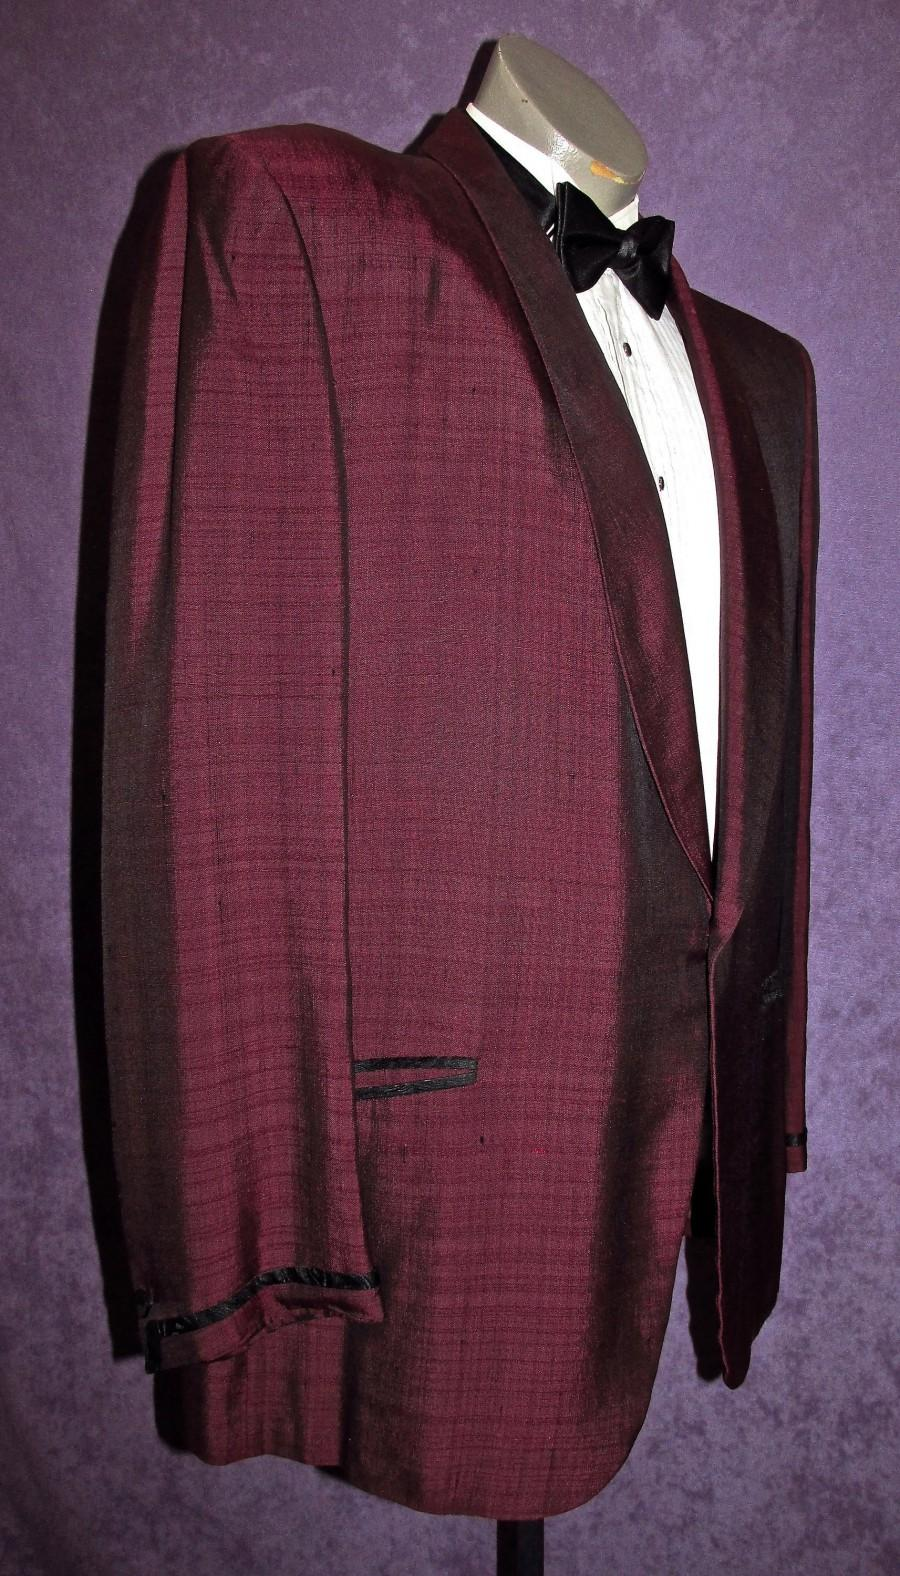 Wedding - 50s Tux Jacket 43R -45R Maroon Burgundy Vintage Tuxedo Early 60s 80s Early Motown Rat Pack Dinner West Side Story by Lord West Union Label